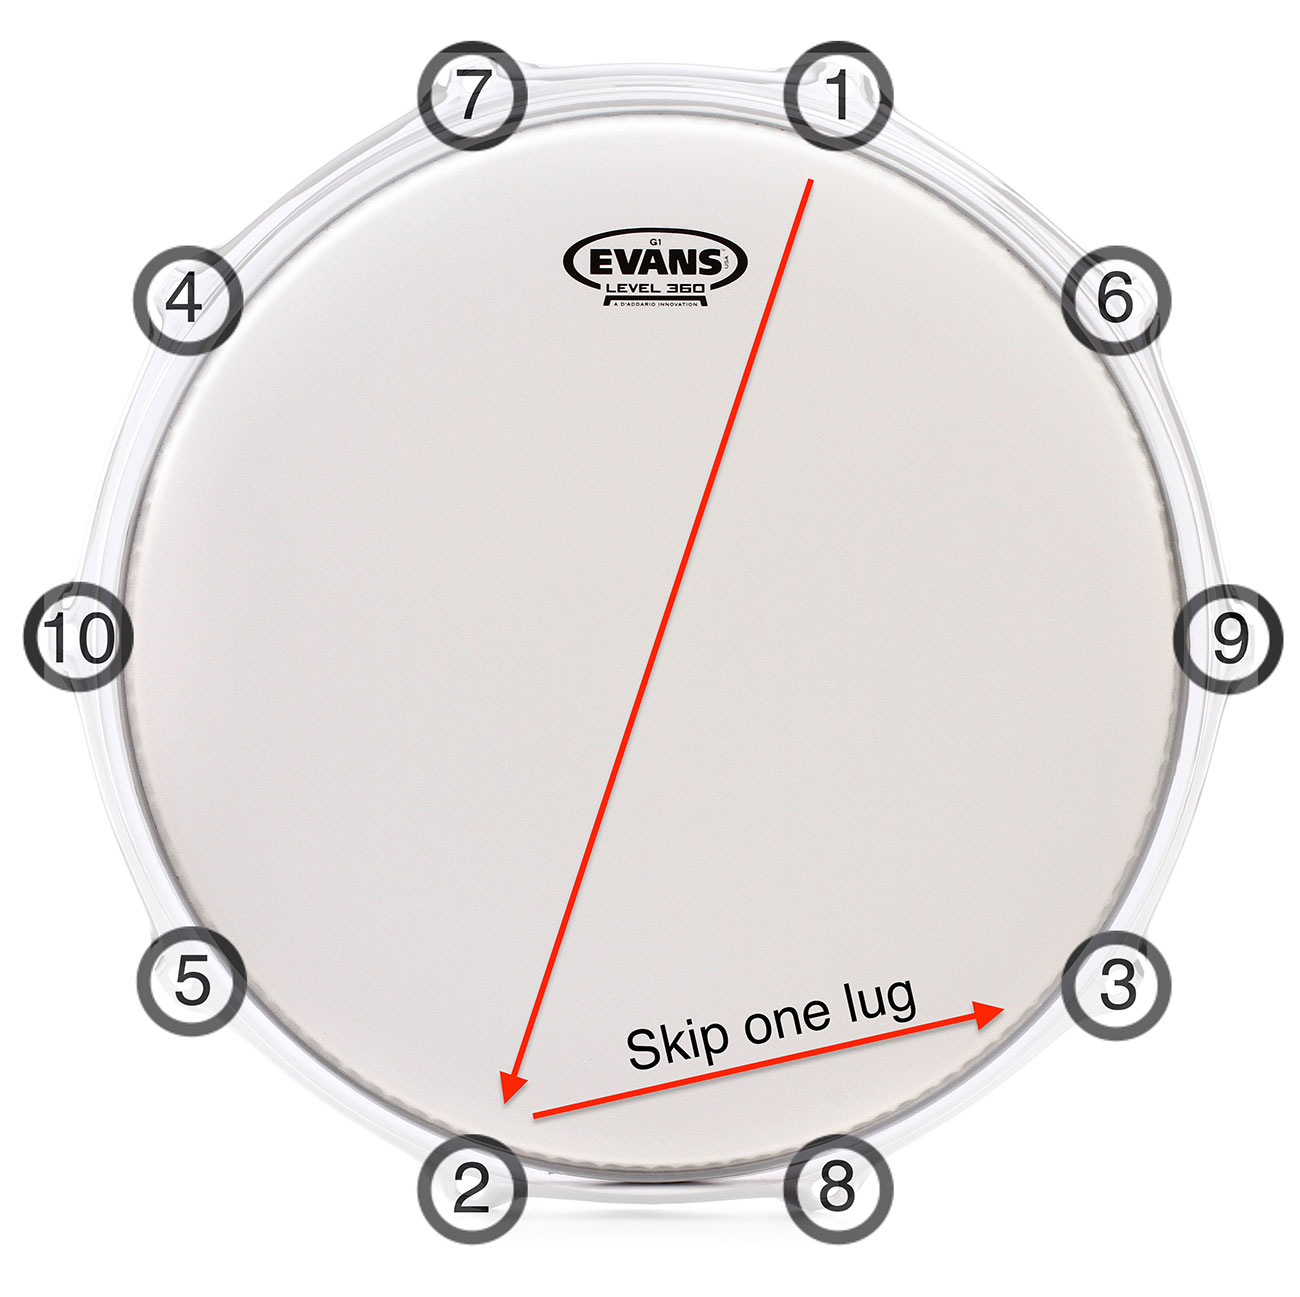 How To Tune Drums Sweetwater Bass Wiring Diagram Ten Lug Tuning Sequence